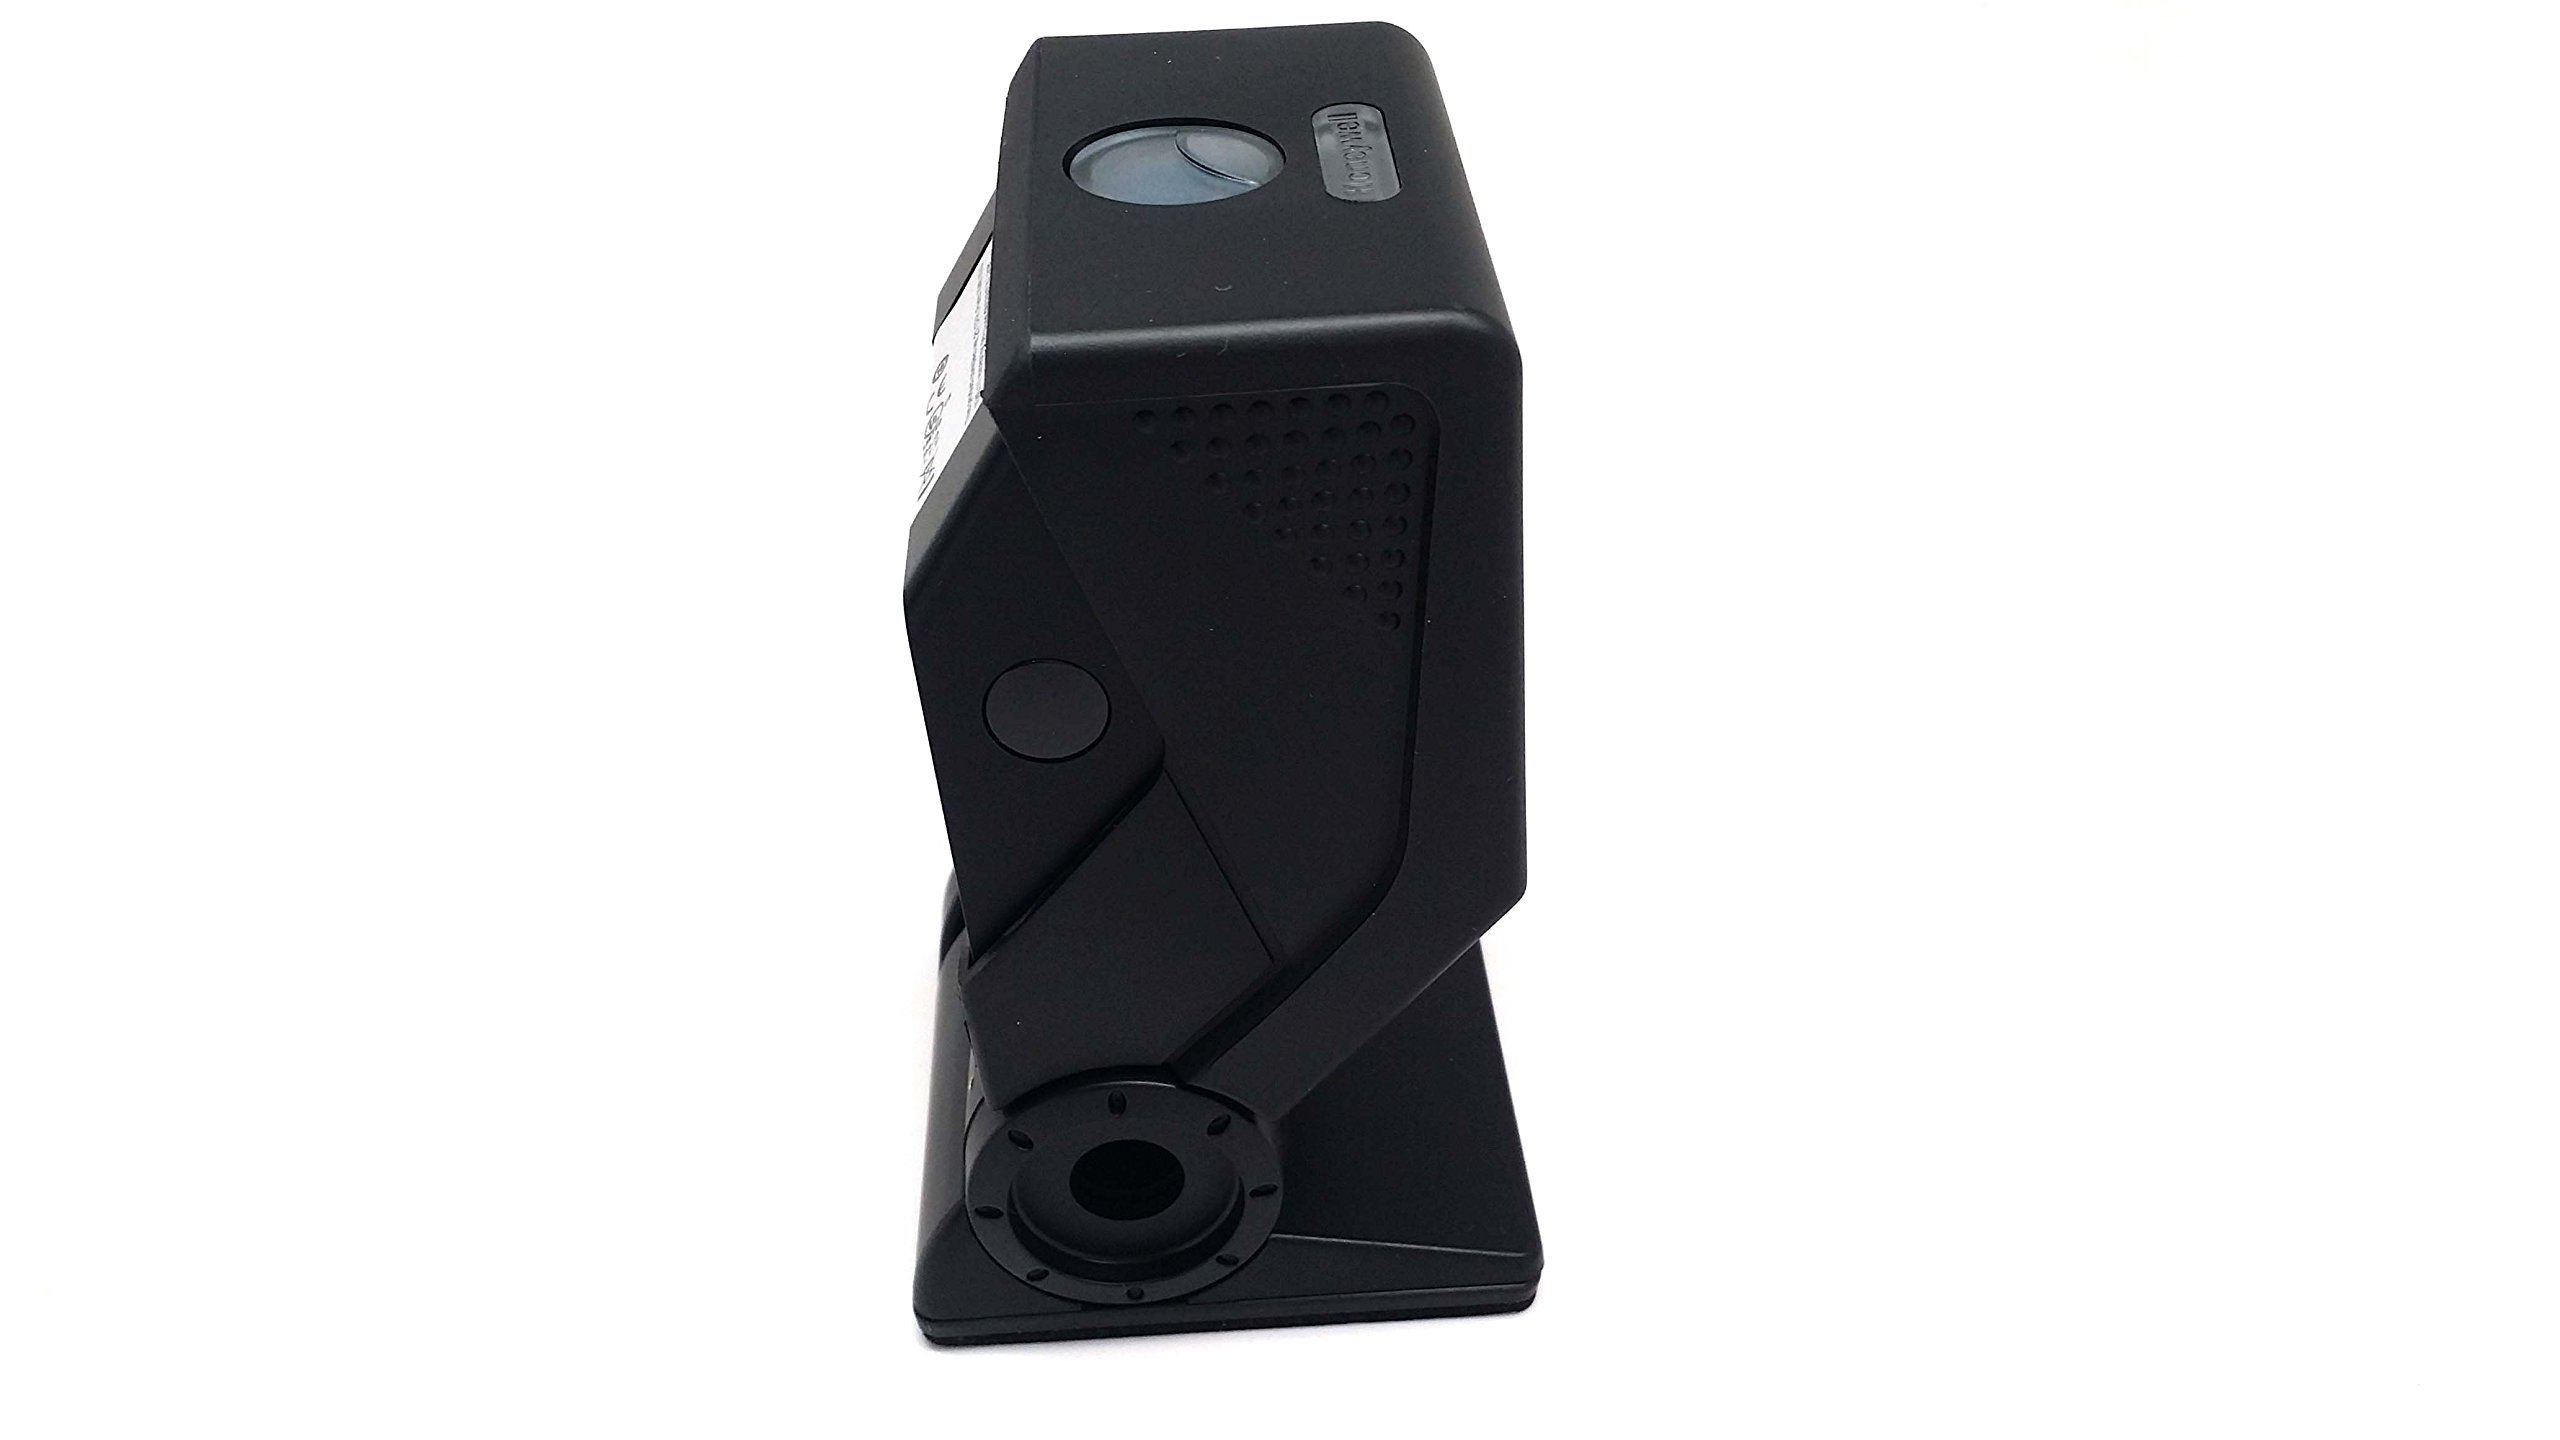 Honeywell QuantumT 3580-C38 Hand-Free Omnidirectional Laser Barcode Scanner with Optional Single-Line Scanning Capabilities Includes USB Cable